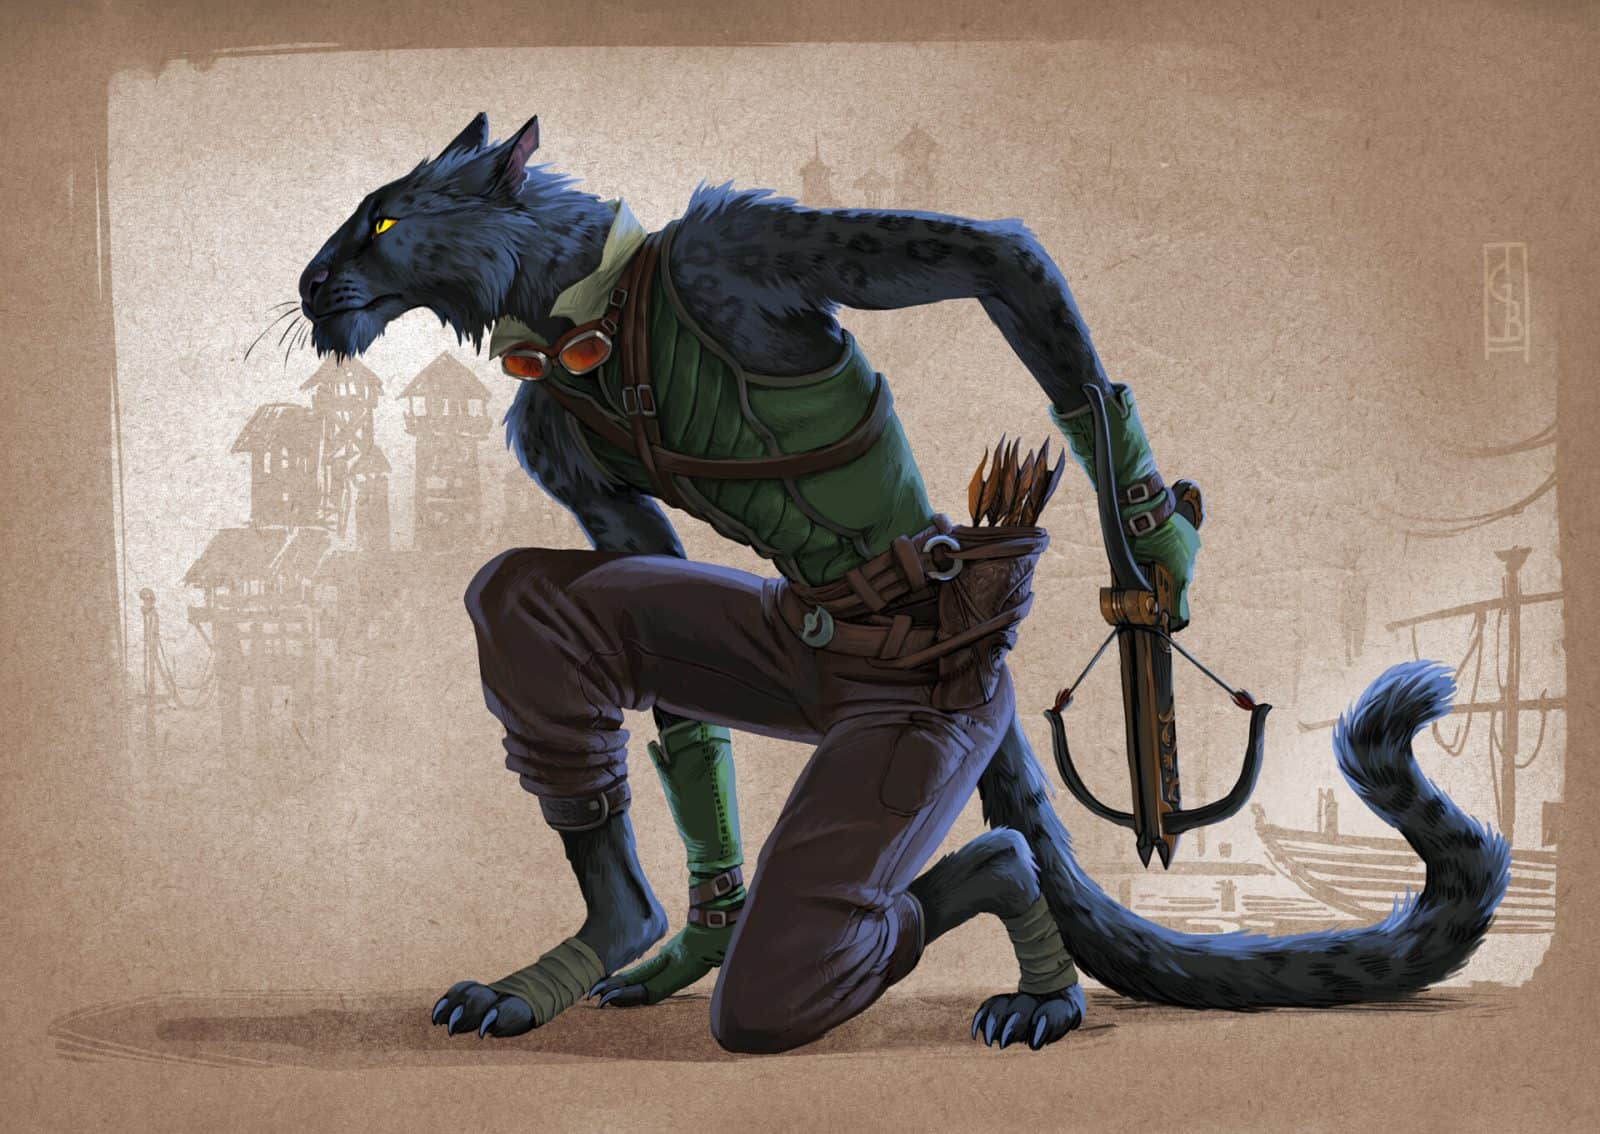 Tabaxi Name Generator 70 Name Suggestions Check out our tabaxi miniature selection for the very best in unique or custom, handmade pieces from our role playing miniatures shops. tabaxi name generator 70 name suggestions